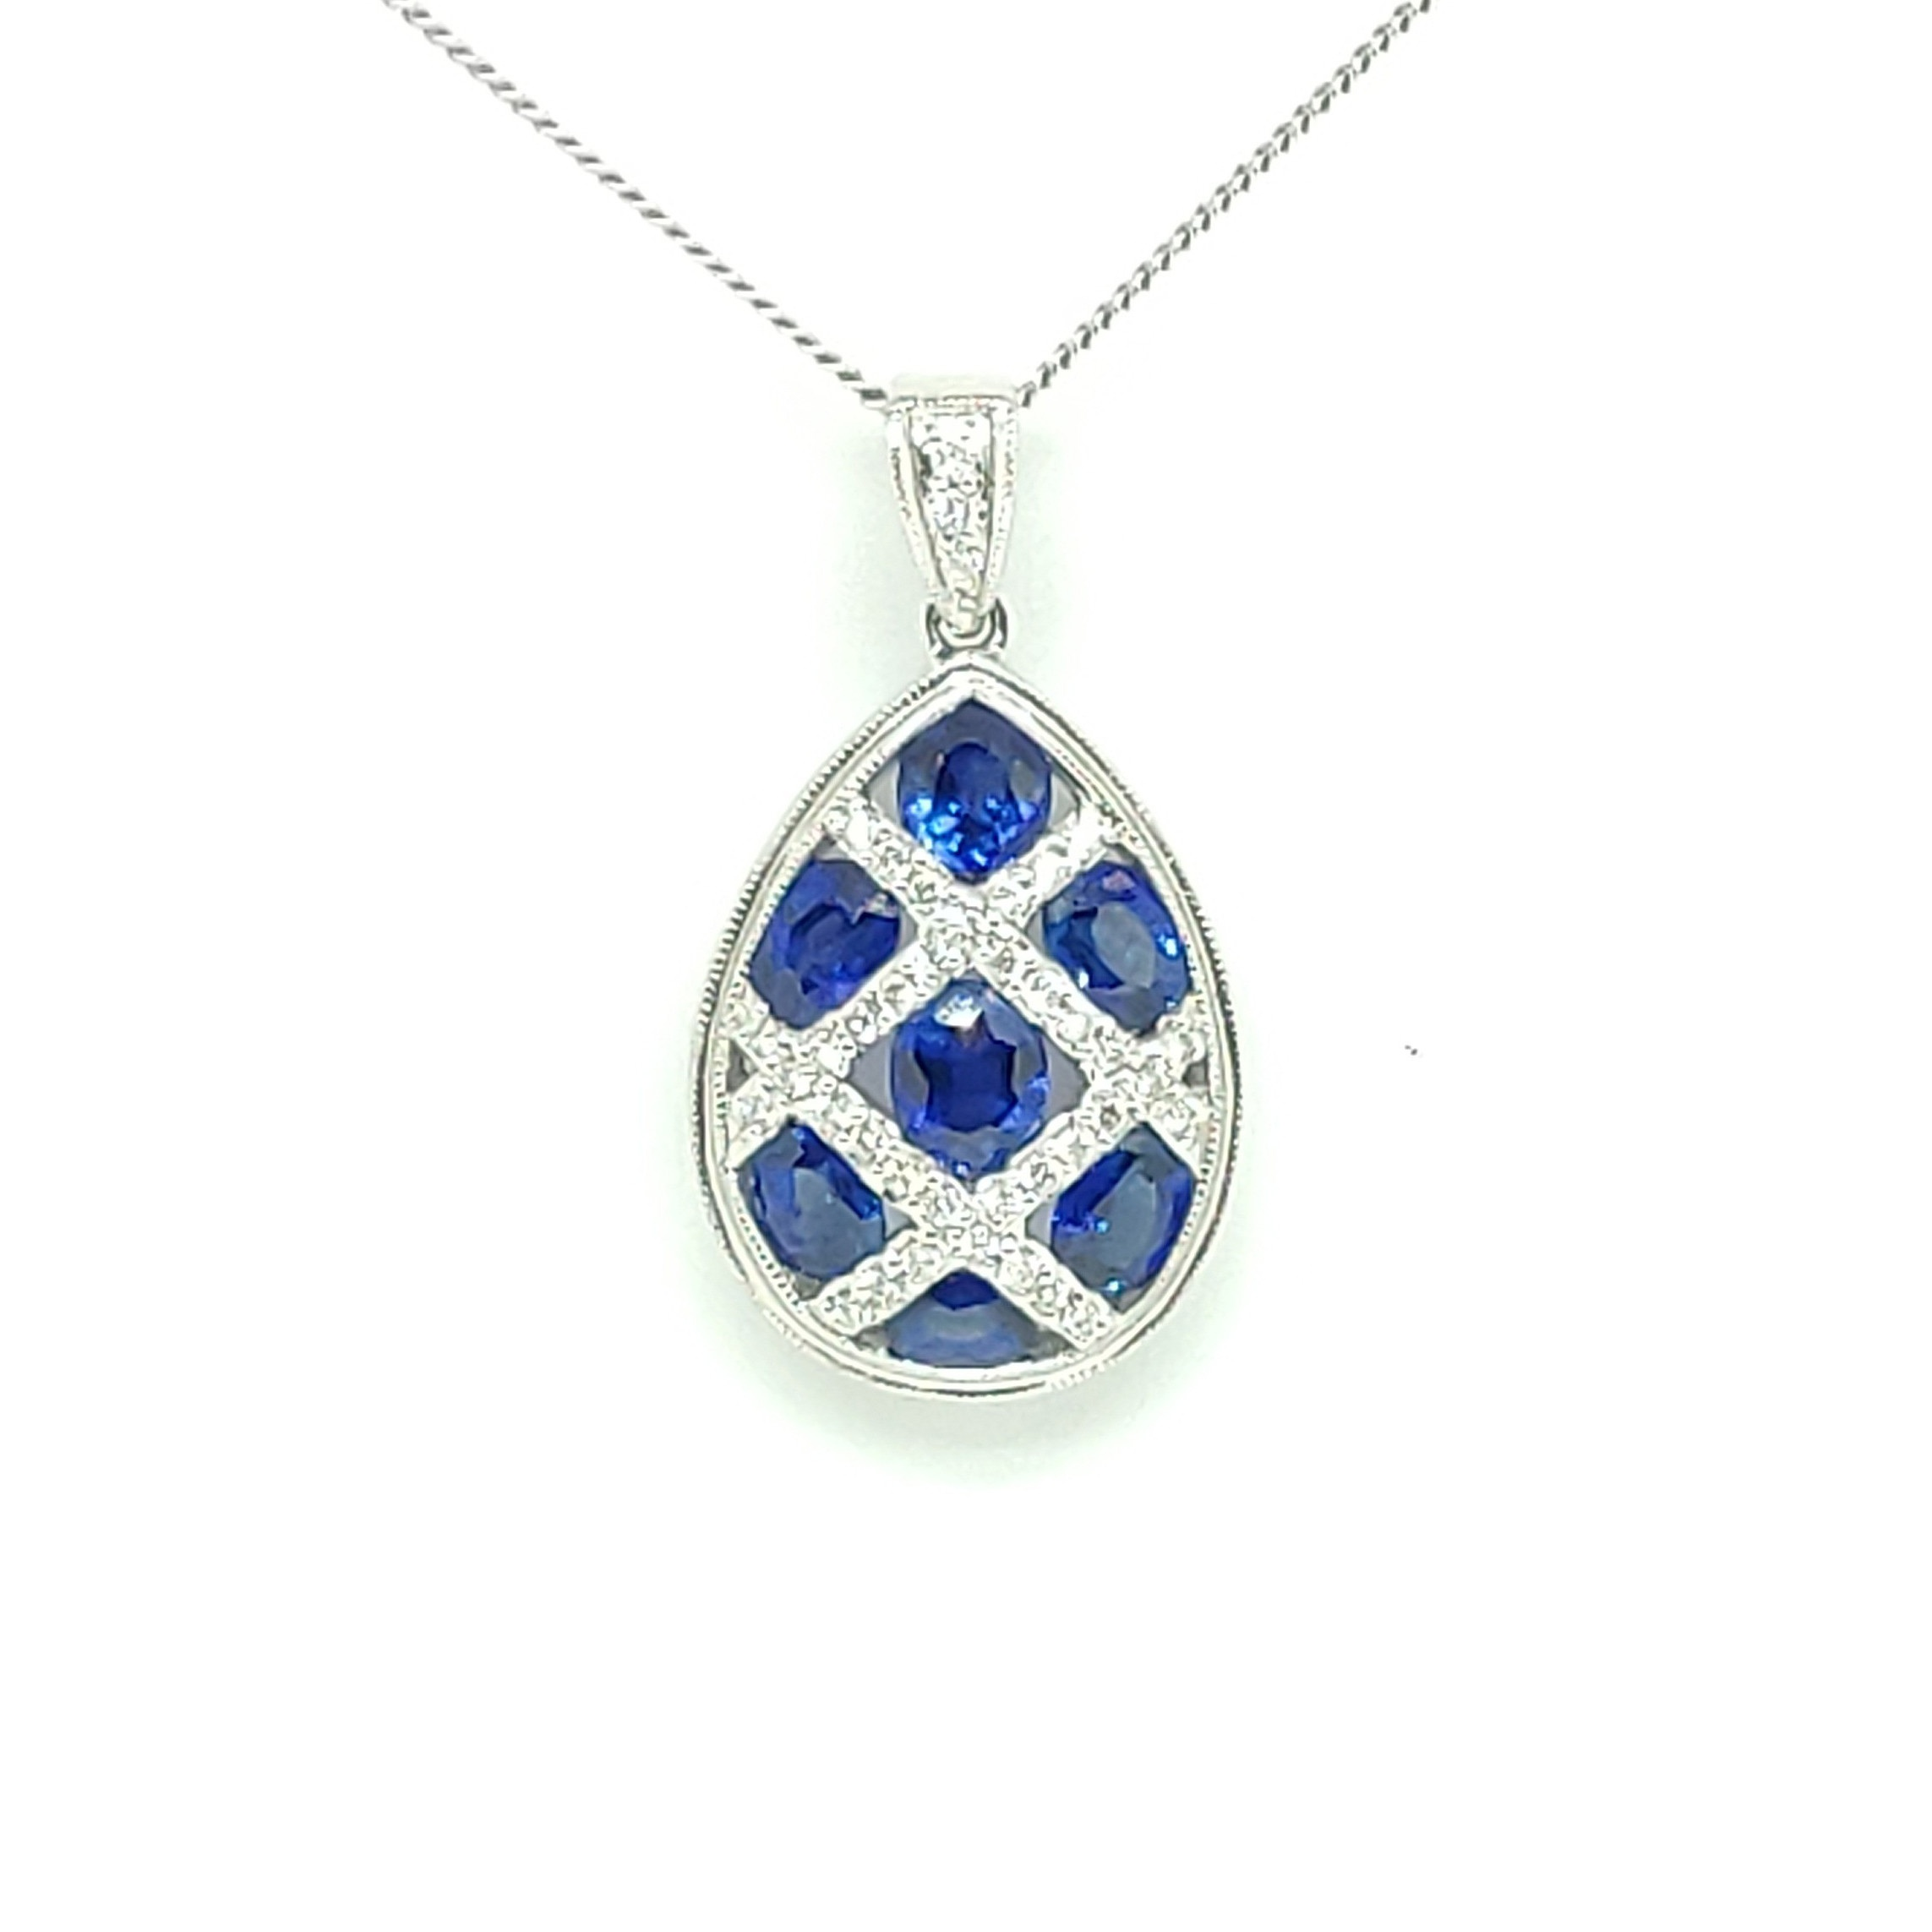 18ct White Gold Sapphire and Diamond Pear Shaped Pendant